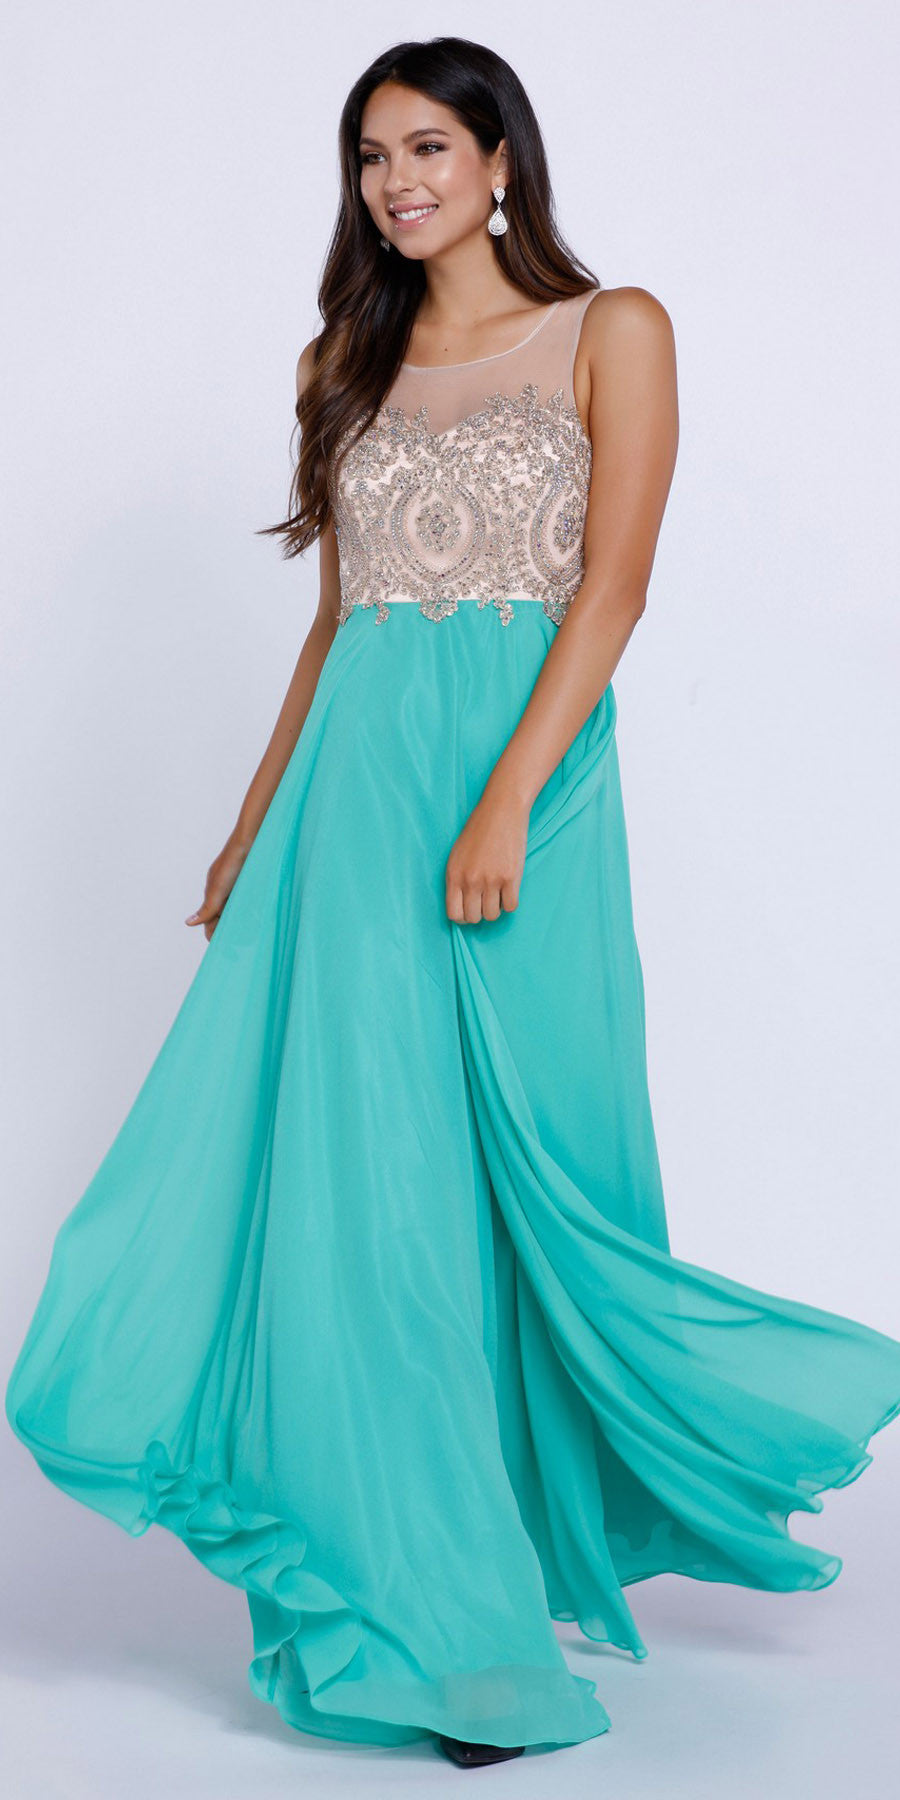 Green Appliqued Bodice A-Line Chiffon Formal Dress Sleeveless